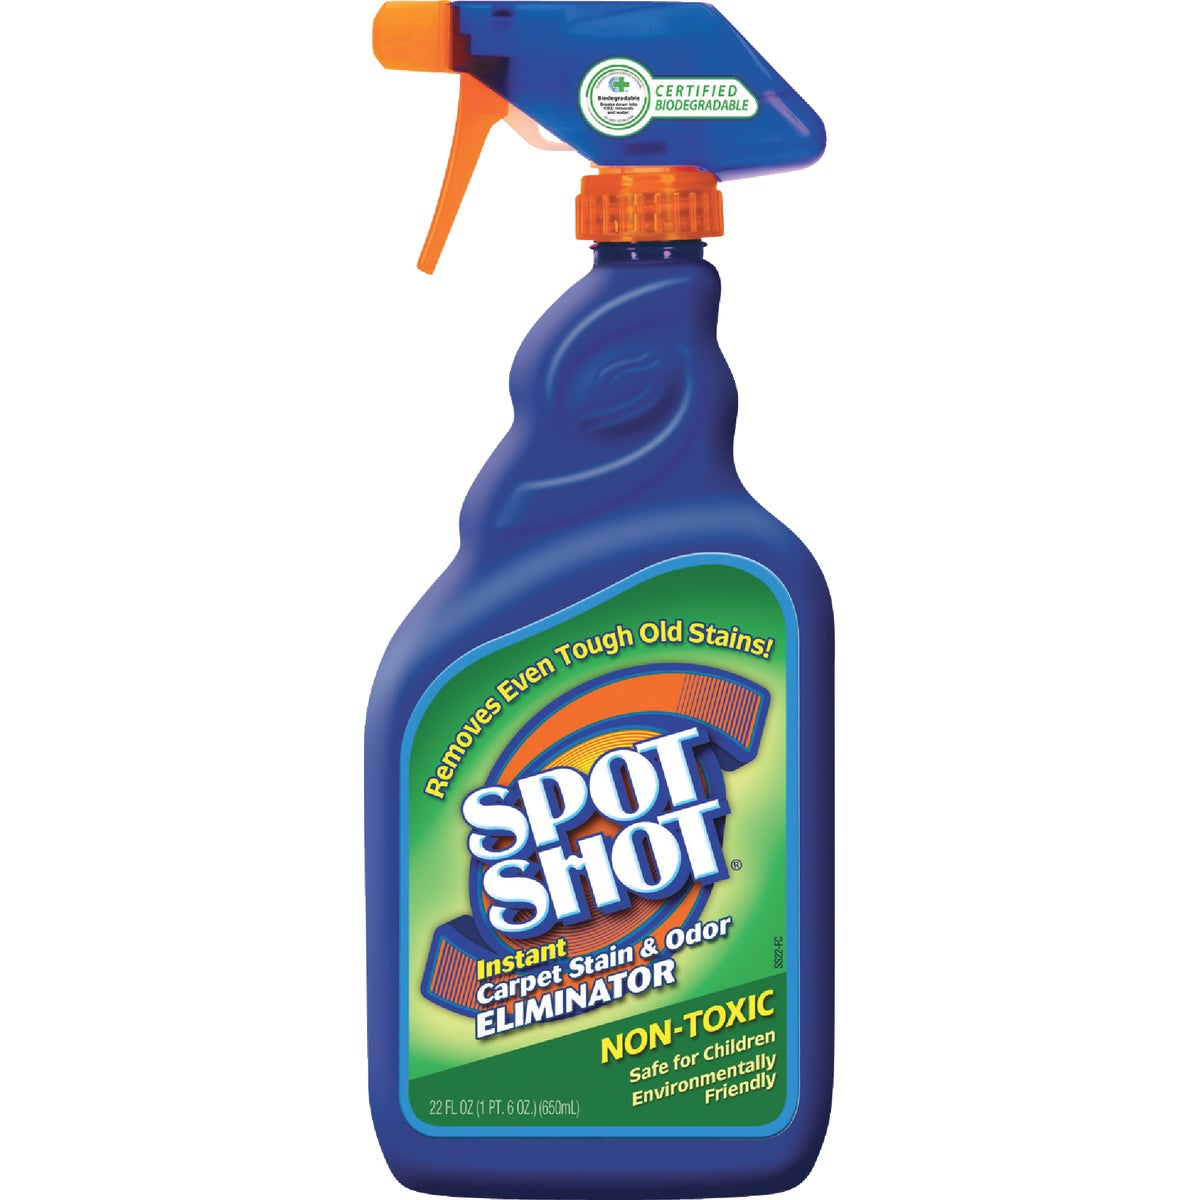 SPOT SHOT STAIN REMOVER